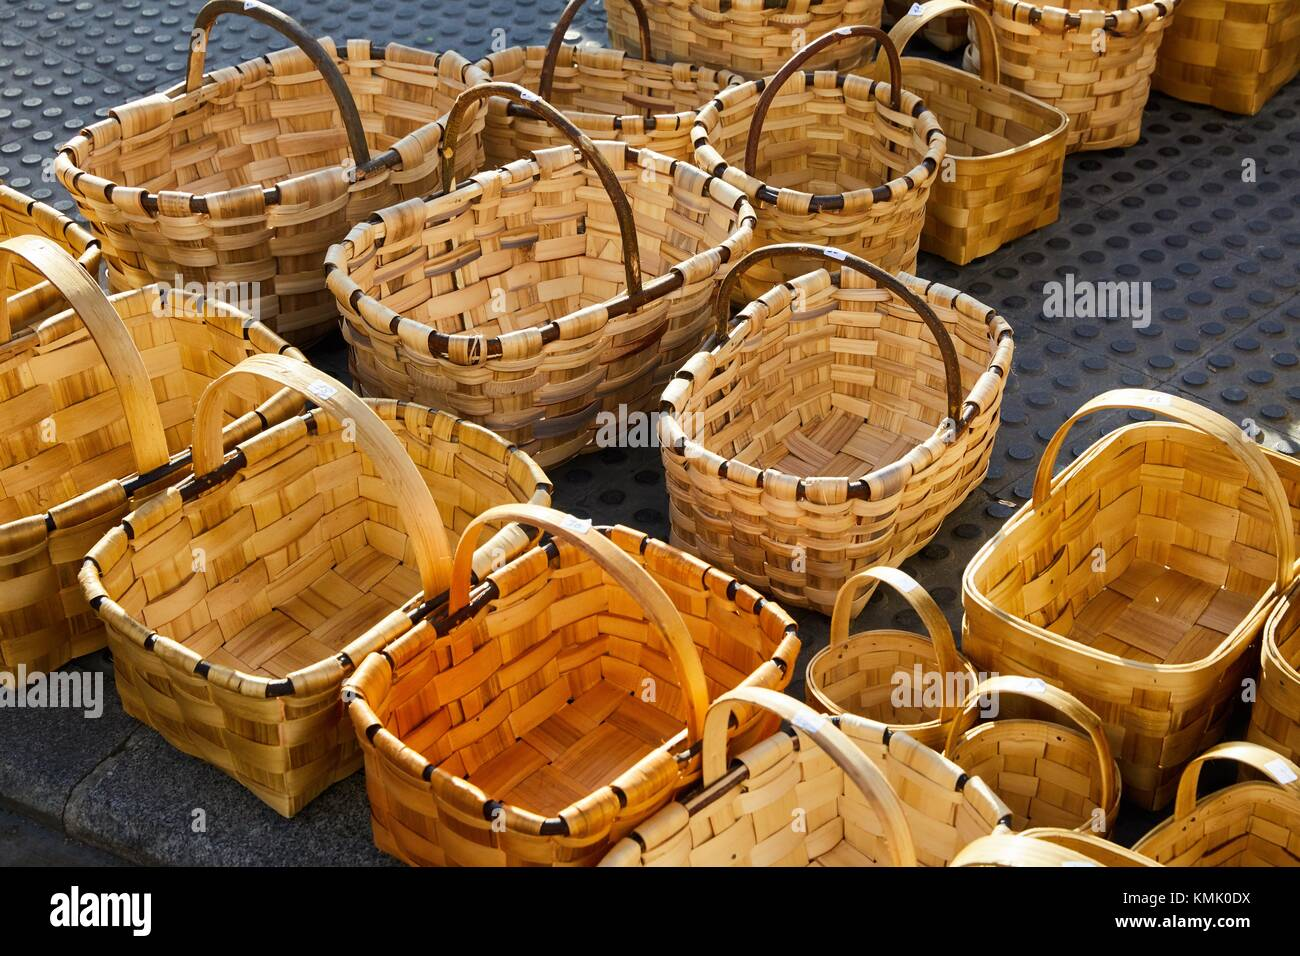 Artisan baskets, Ordizia Market, Special Christmas market, Ordizia, Gipuzkoa, Basque Country, Spain, Europe - Stock Image